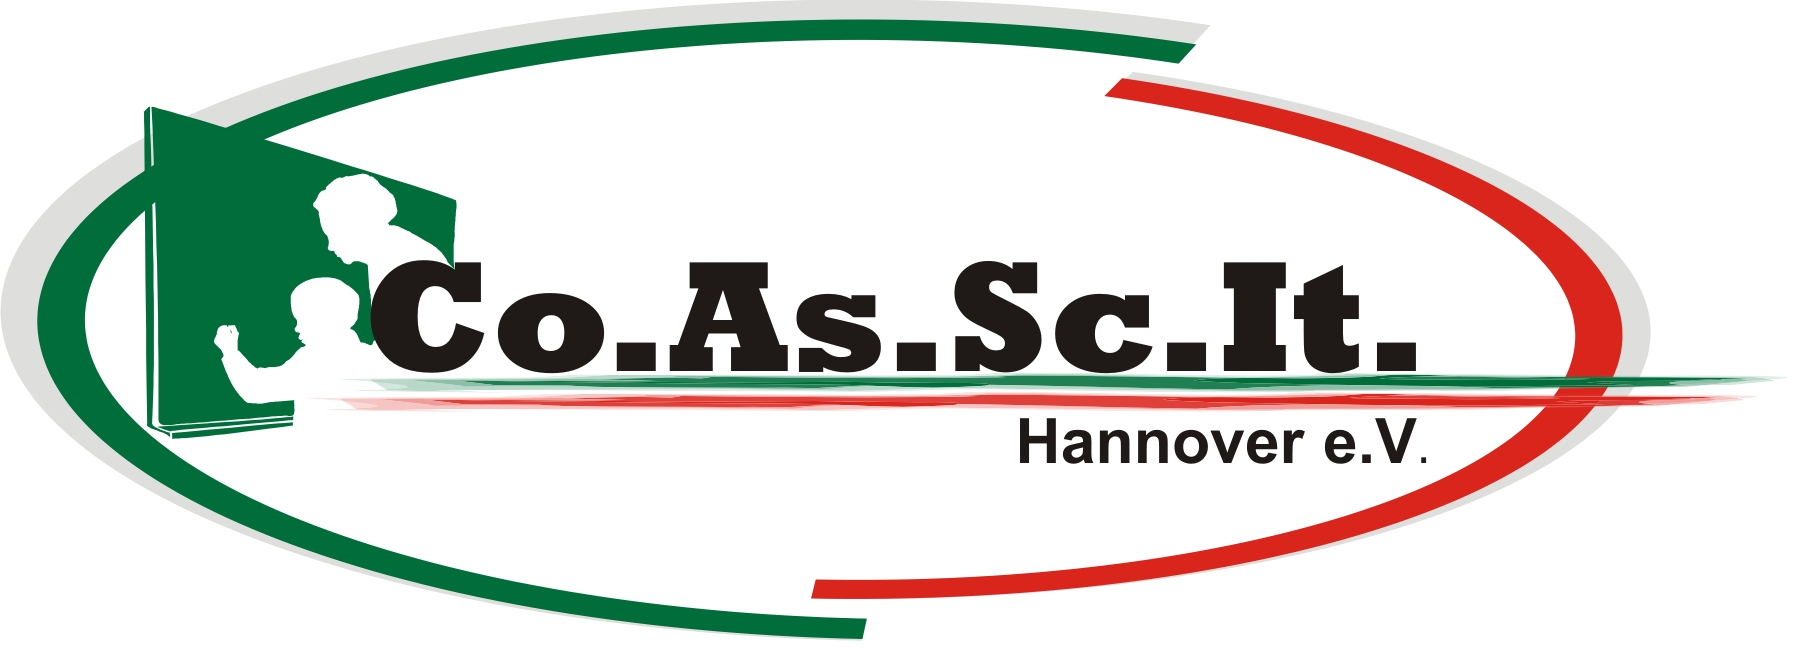 Co.As.Sc.It. Hannover e.V. logo